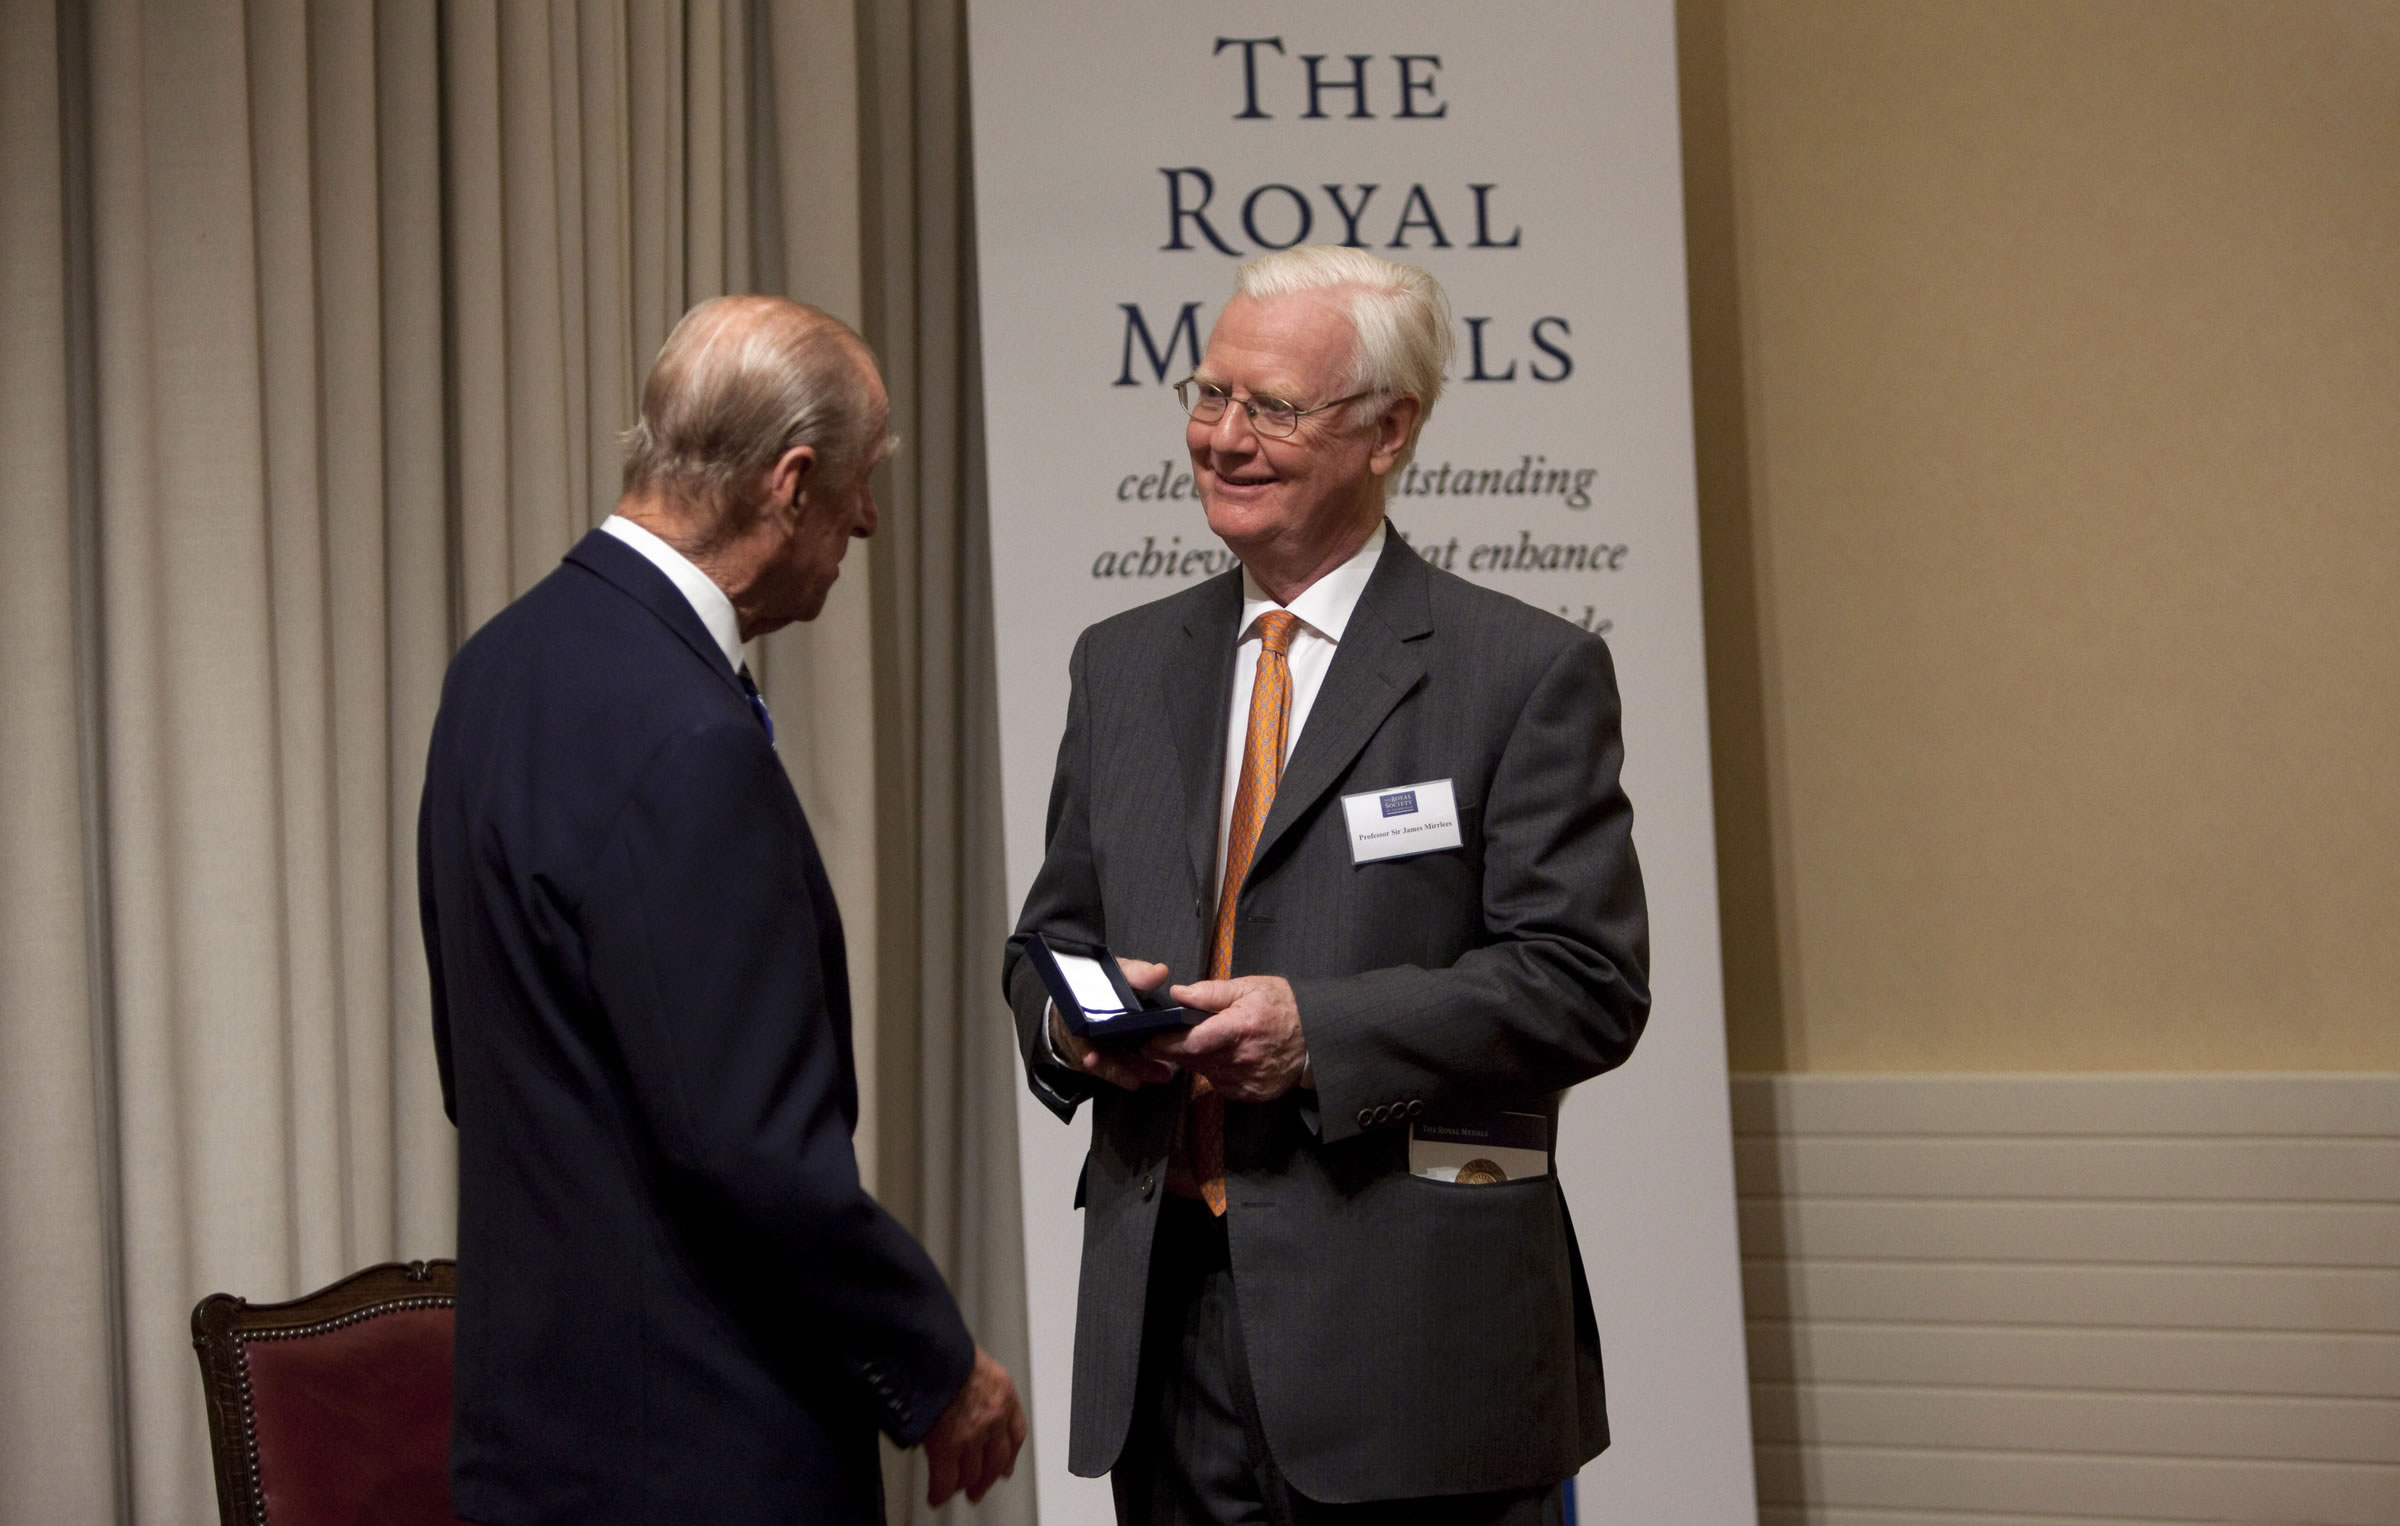 Professor Sir James Mirrlees (right), Nobel Laureate in Economic Sciences and Distinguished Professor-at-Large of CUHK, receives the Royal Medal 2009 from The Duke of Edinburgh, Prince Philip of the UK